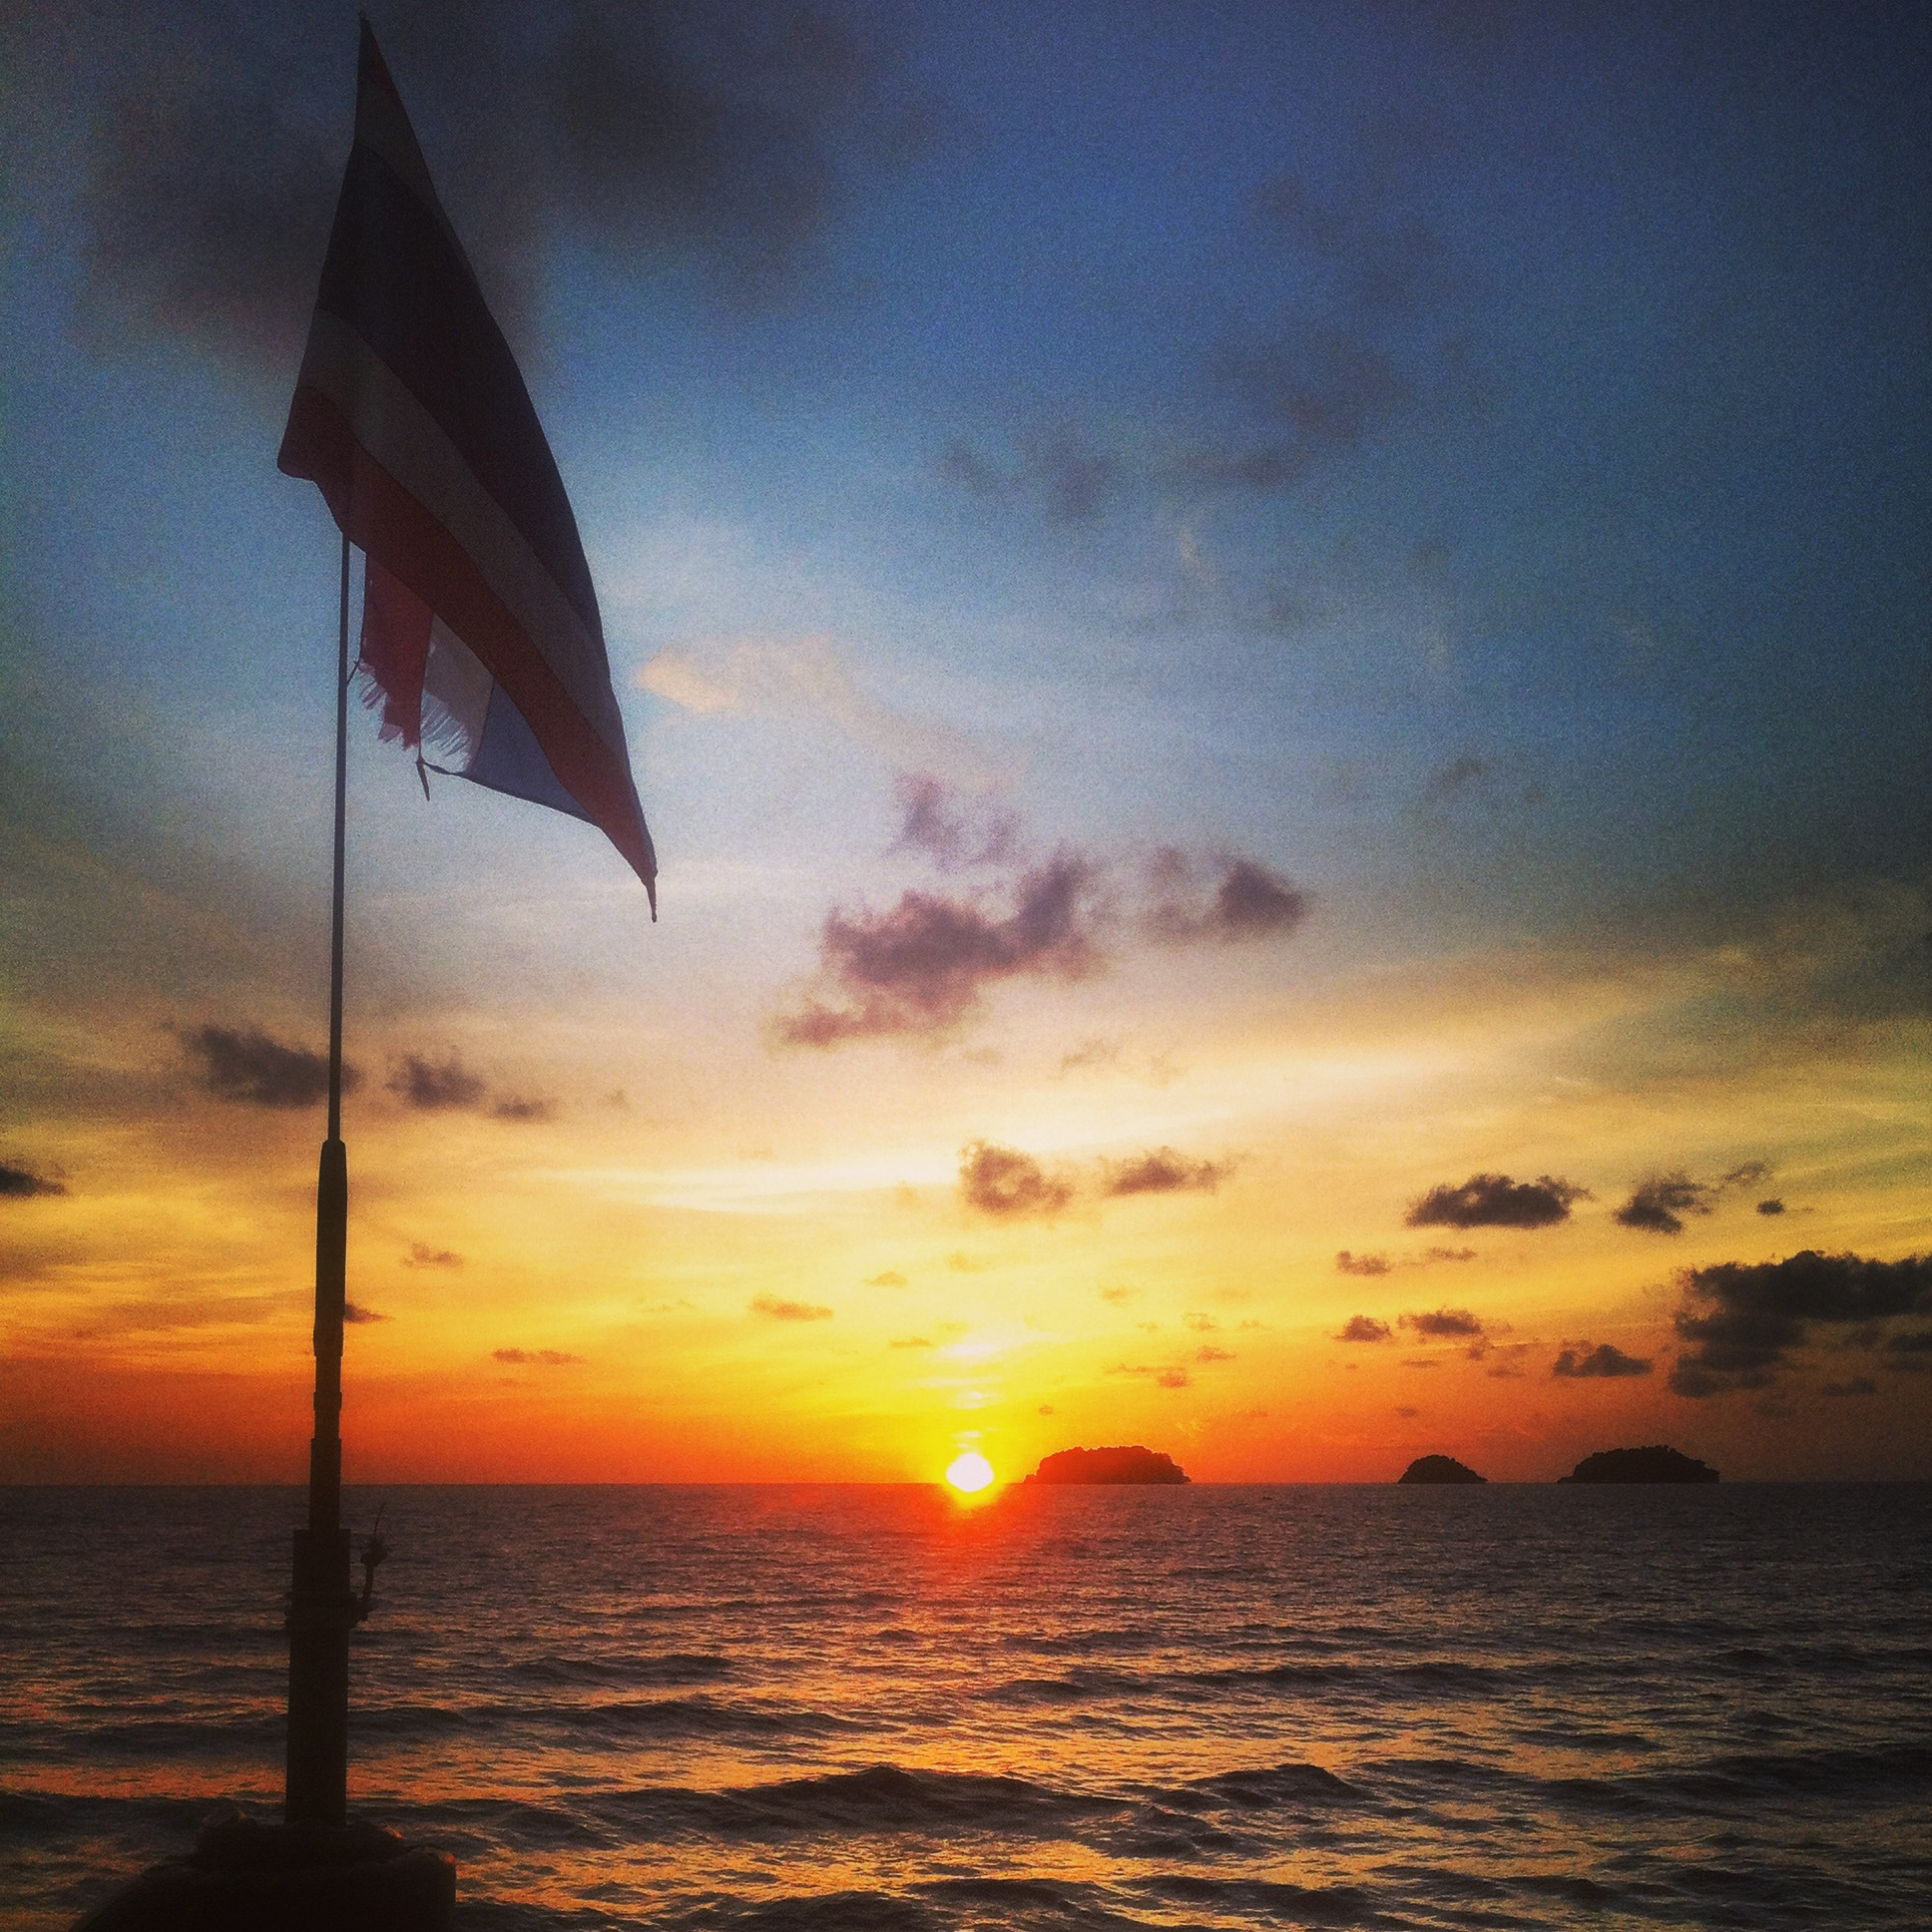 sunset, Koh Chang, Thailand